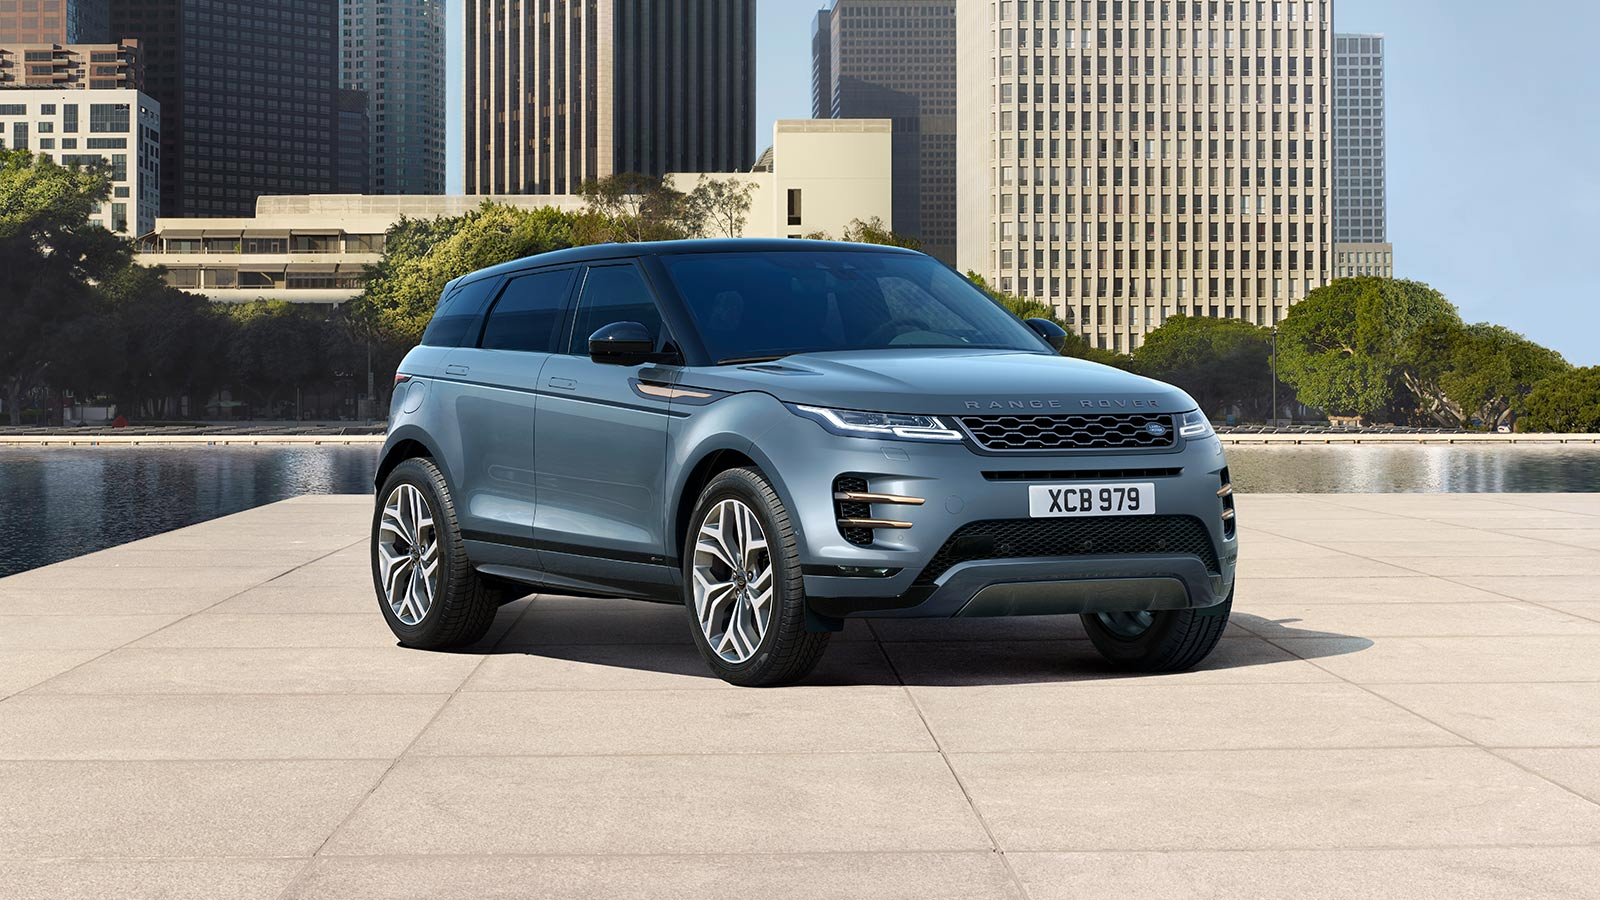 NEW RANGE ROVER EVOQUE FIRST EDITION